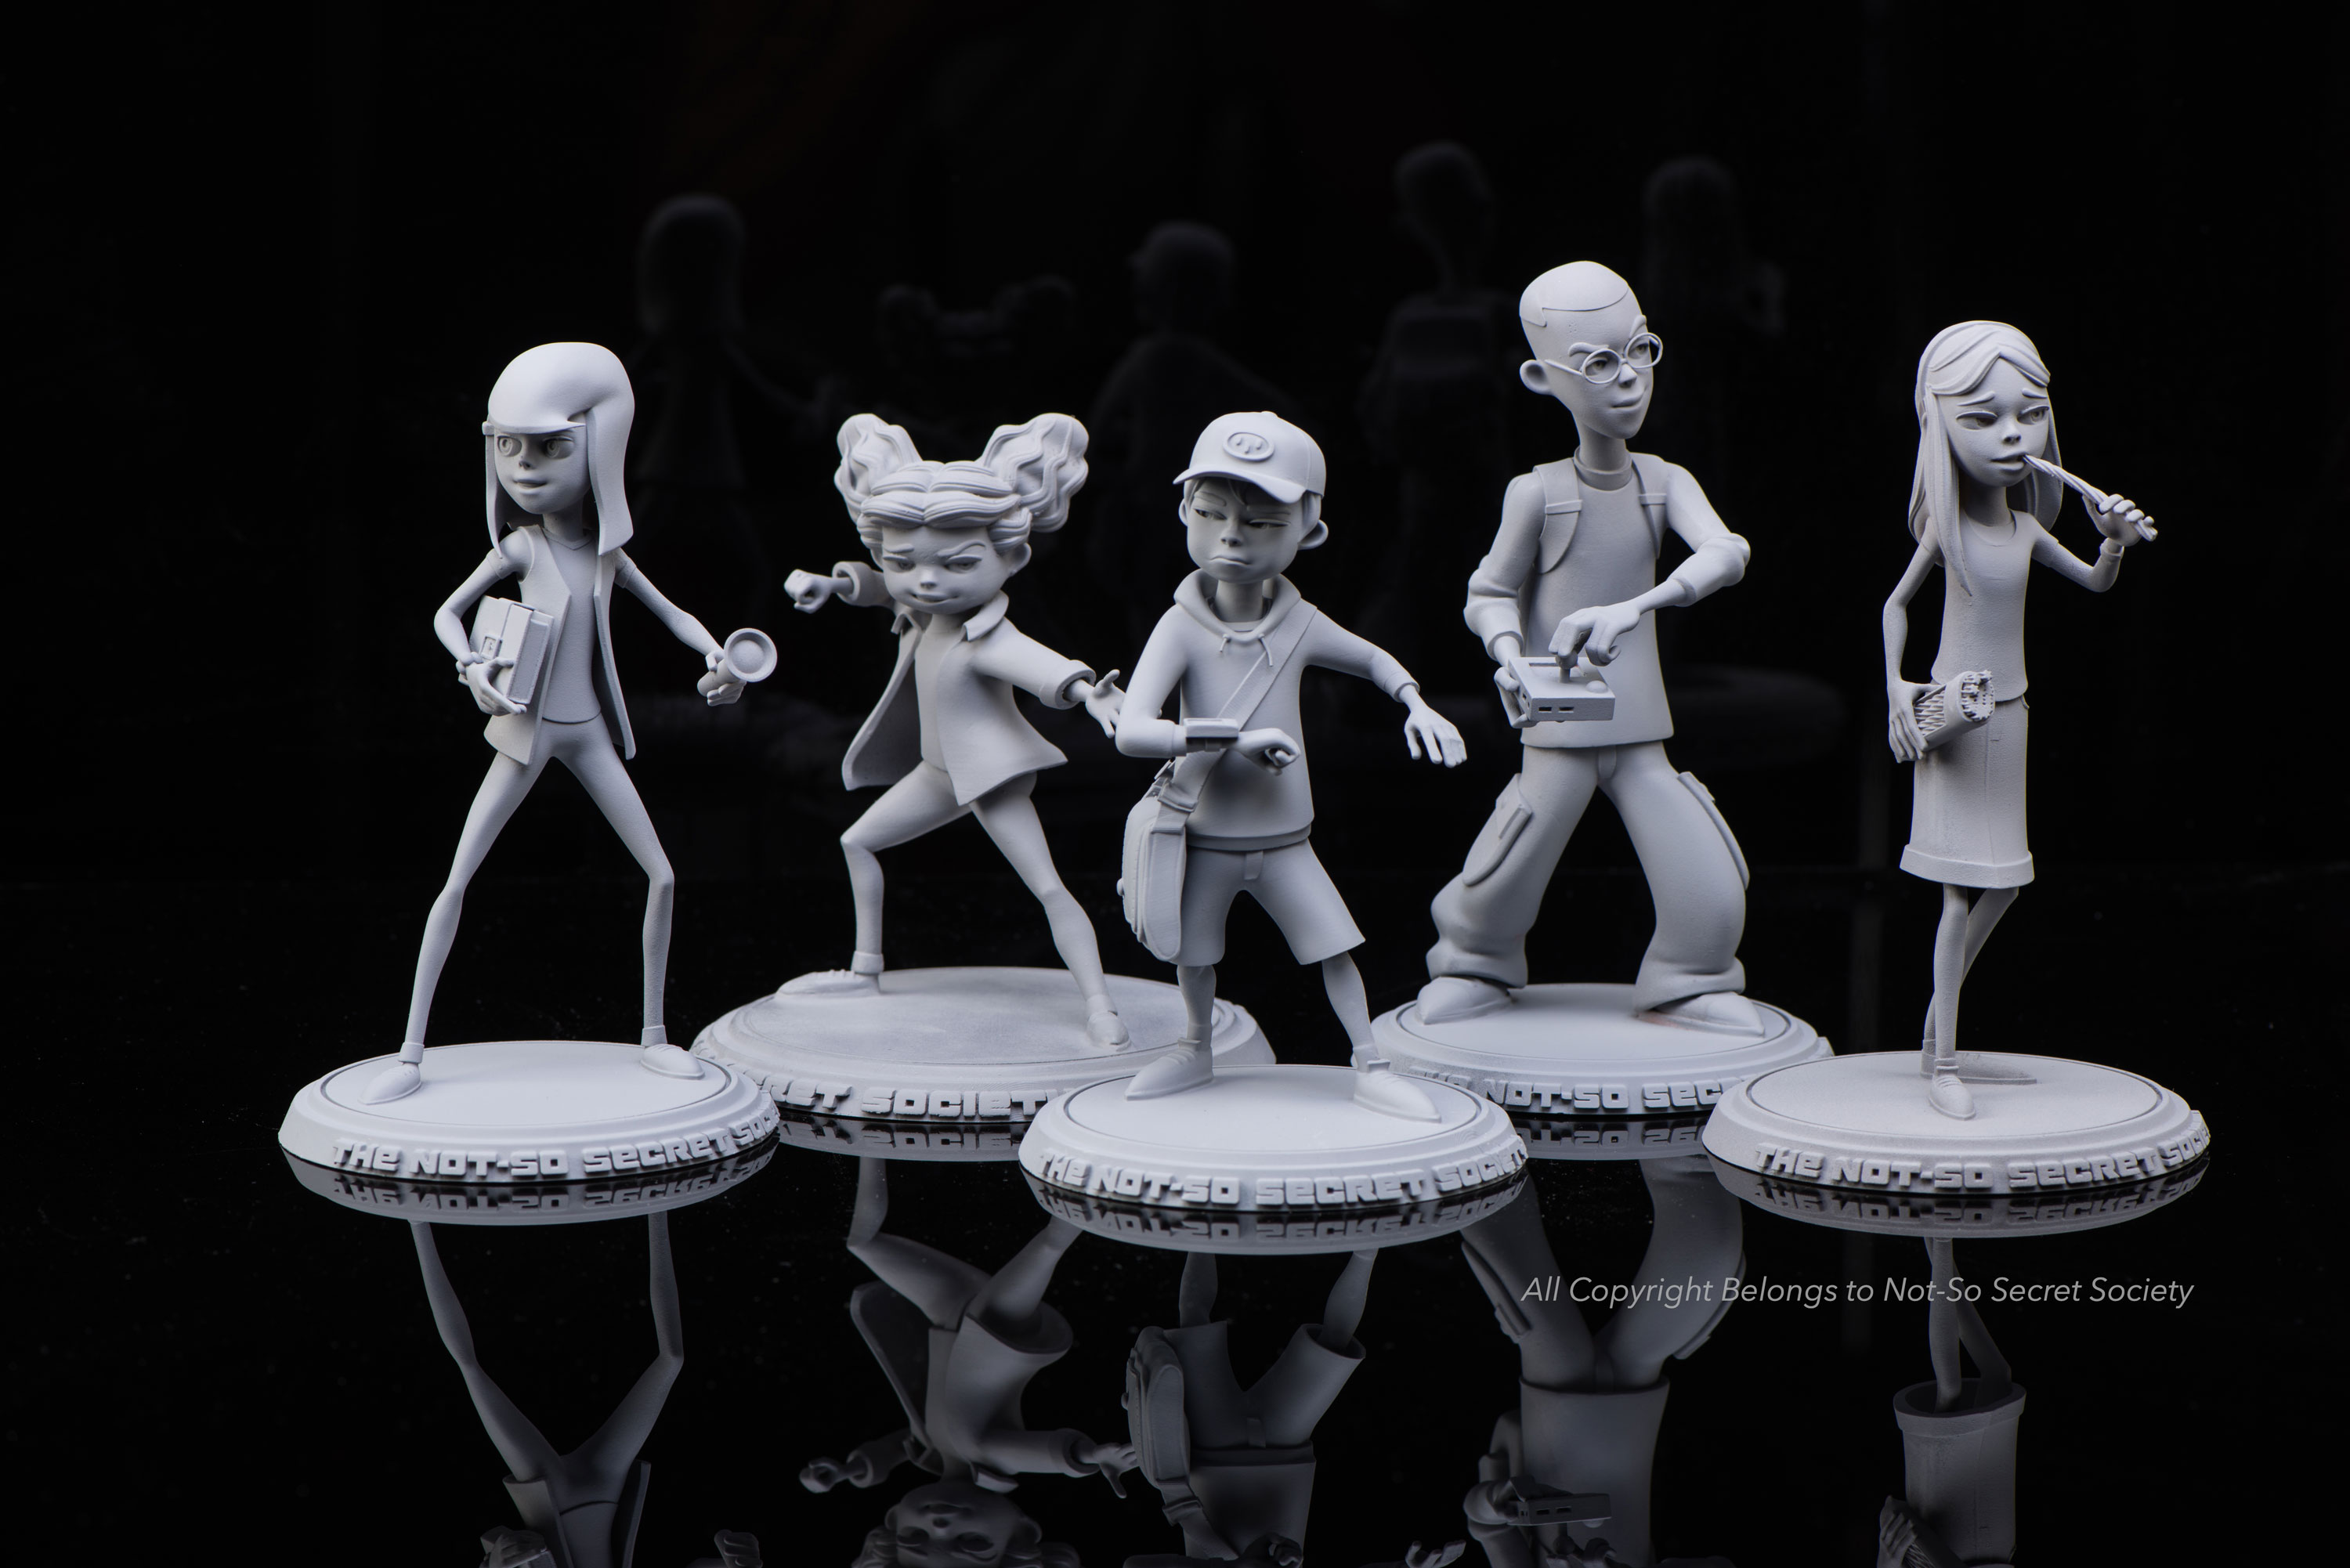 3d printed The not-so secret society characters